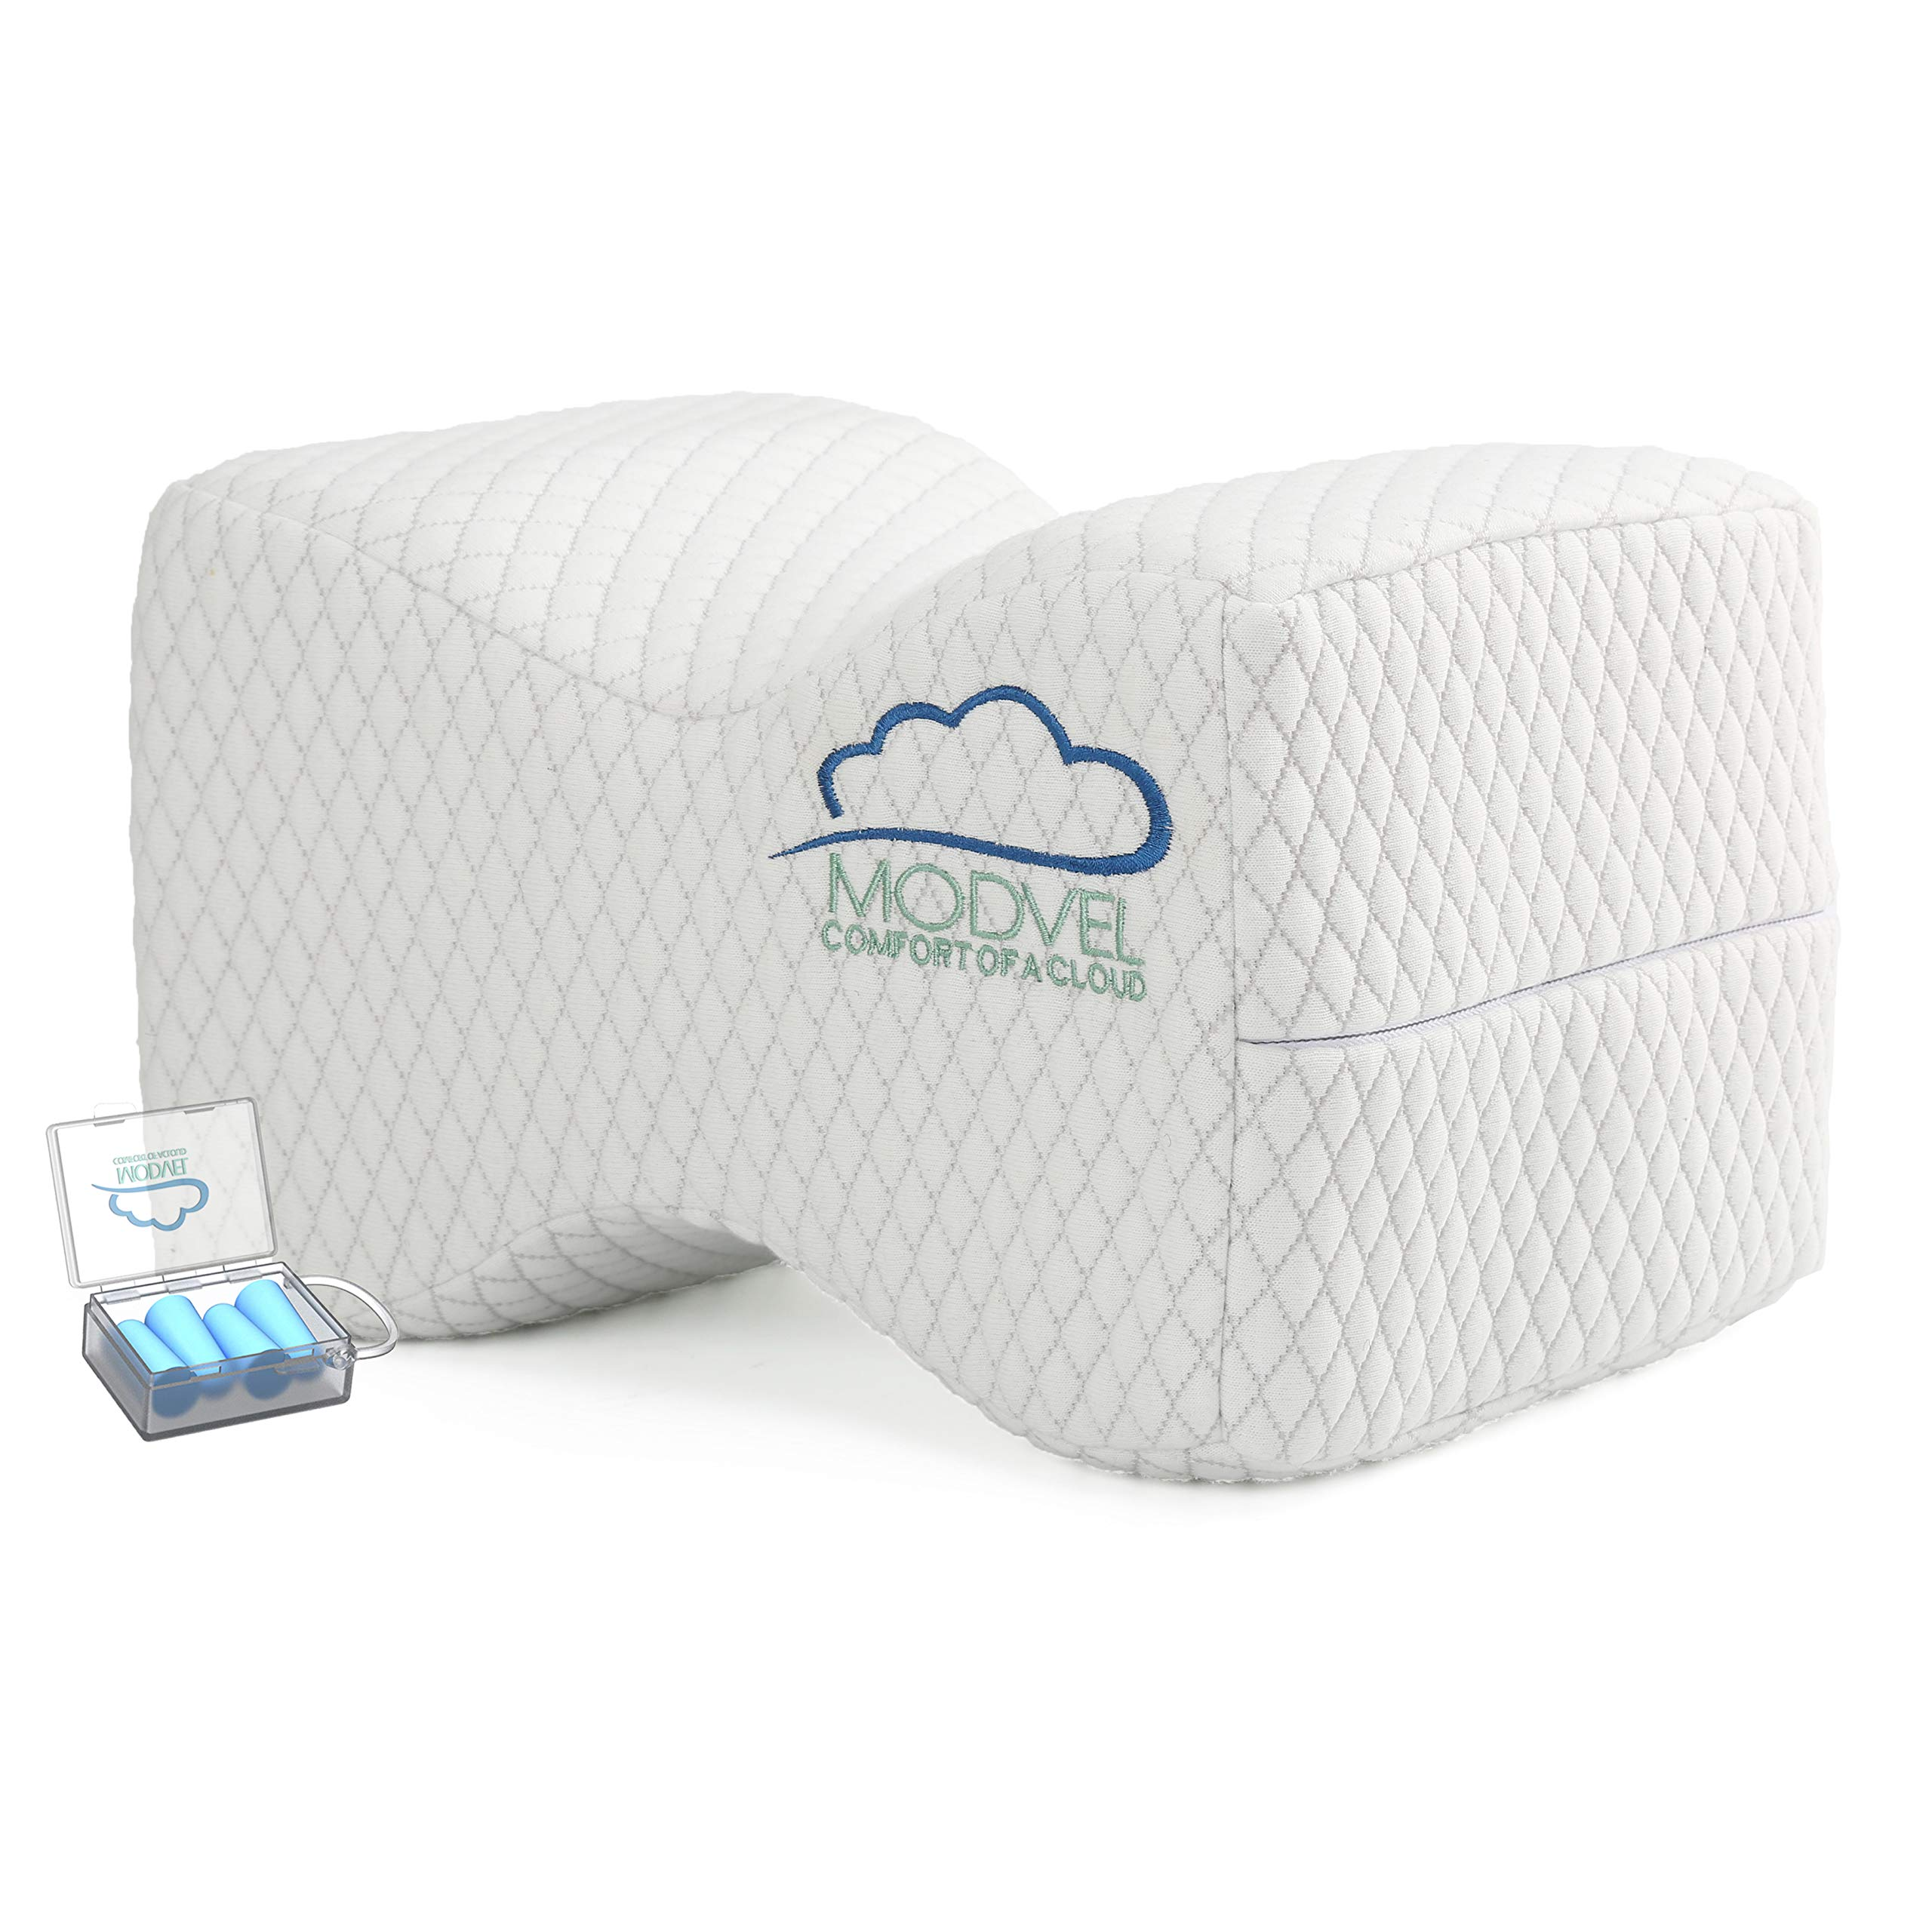 Modvel Orthopedic Knee Pillow – Memory Foam, Hip, Sciatica & Lower Back Pain Relief Cushion, Provides Support & Comfort, Breathable & Washable, Between-The-Legs Pregnancy Sleep Contour Wedge (MV-104)